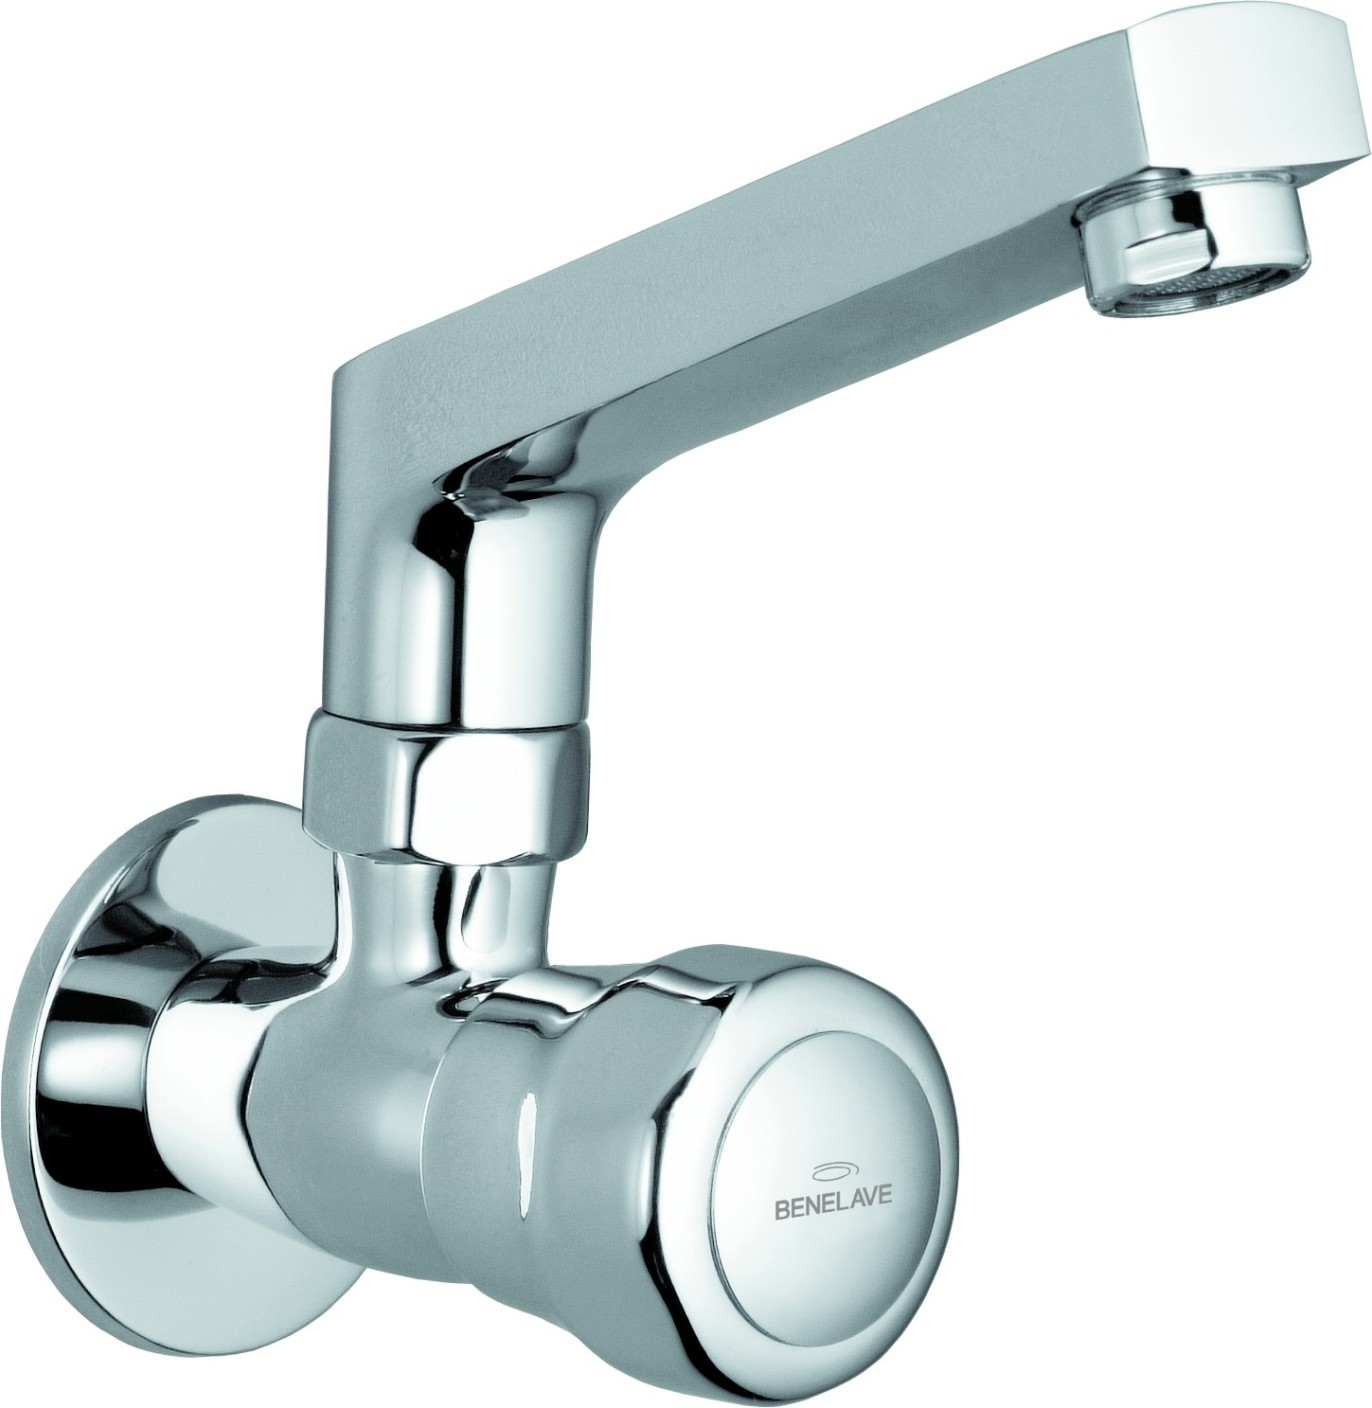 aq hansa different new the available stylepark is in hewi k frankfurt en tones faucets ish fittings at colorful s color news